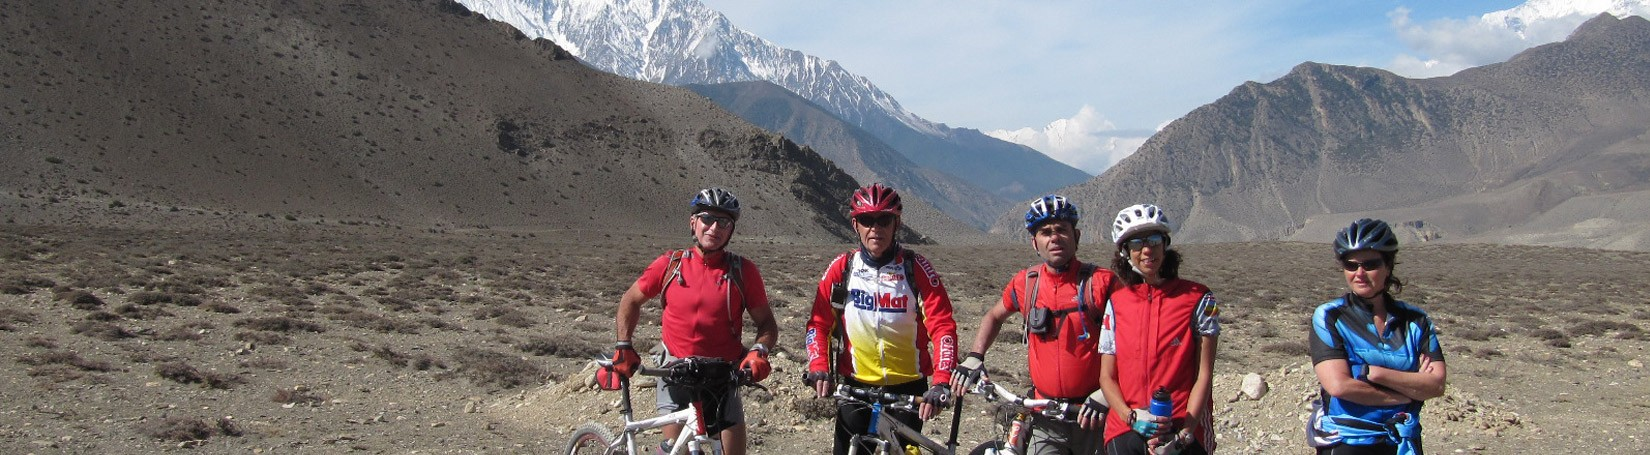 Mountain Biking in Upper Mustang